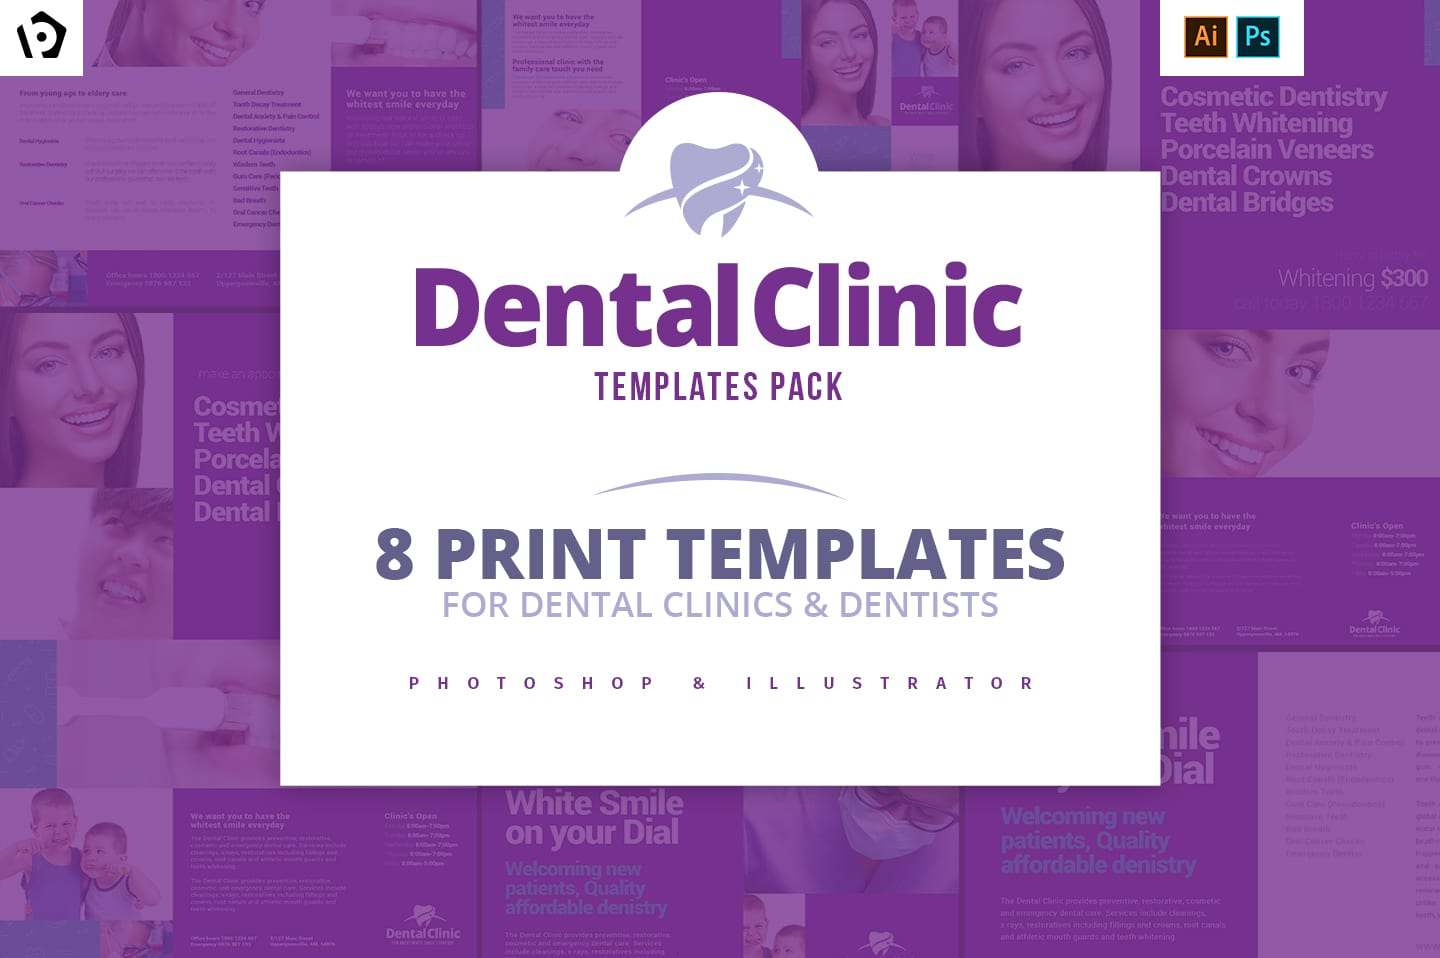 Dental Clinic Templates Pack